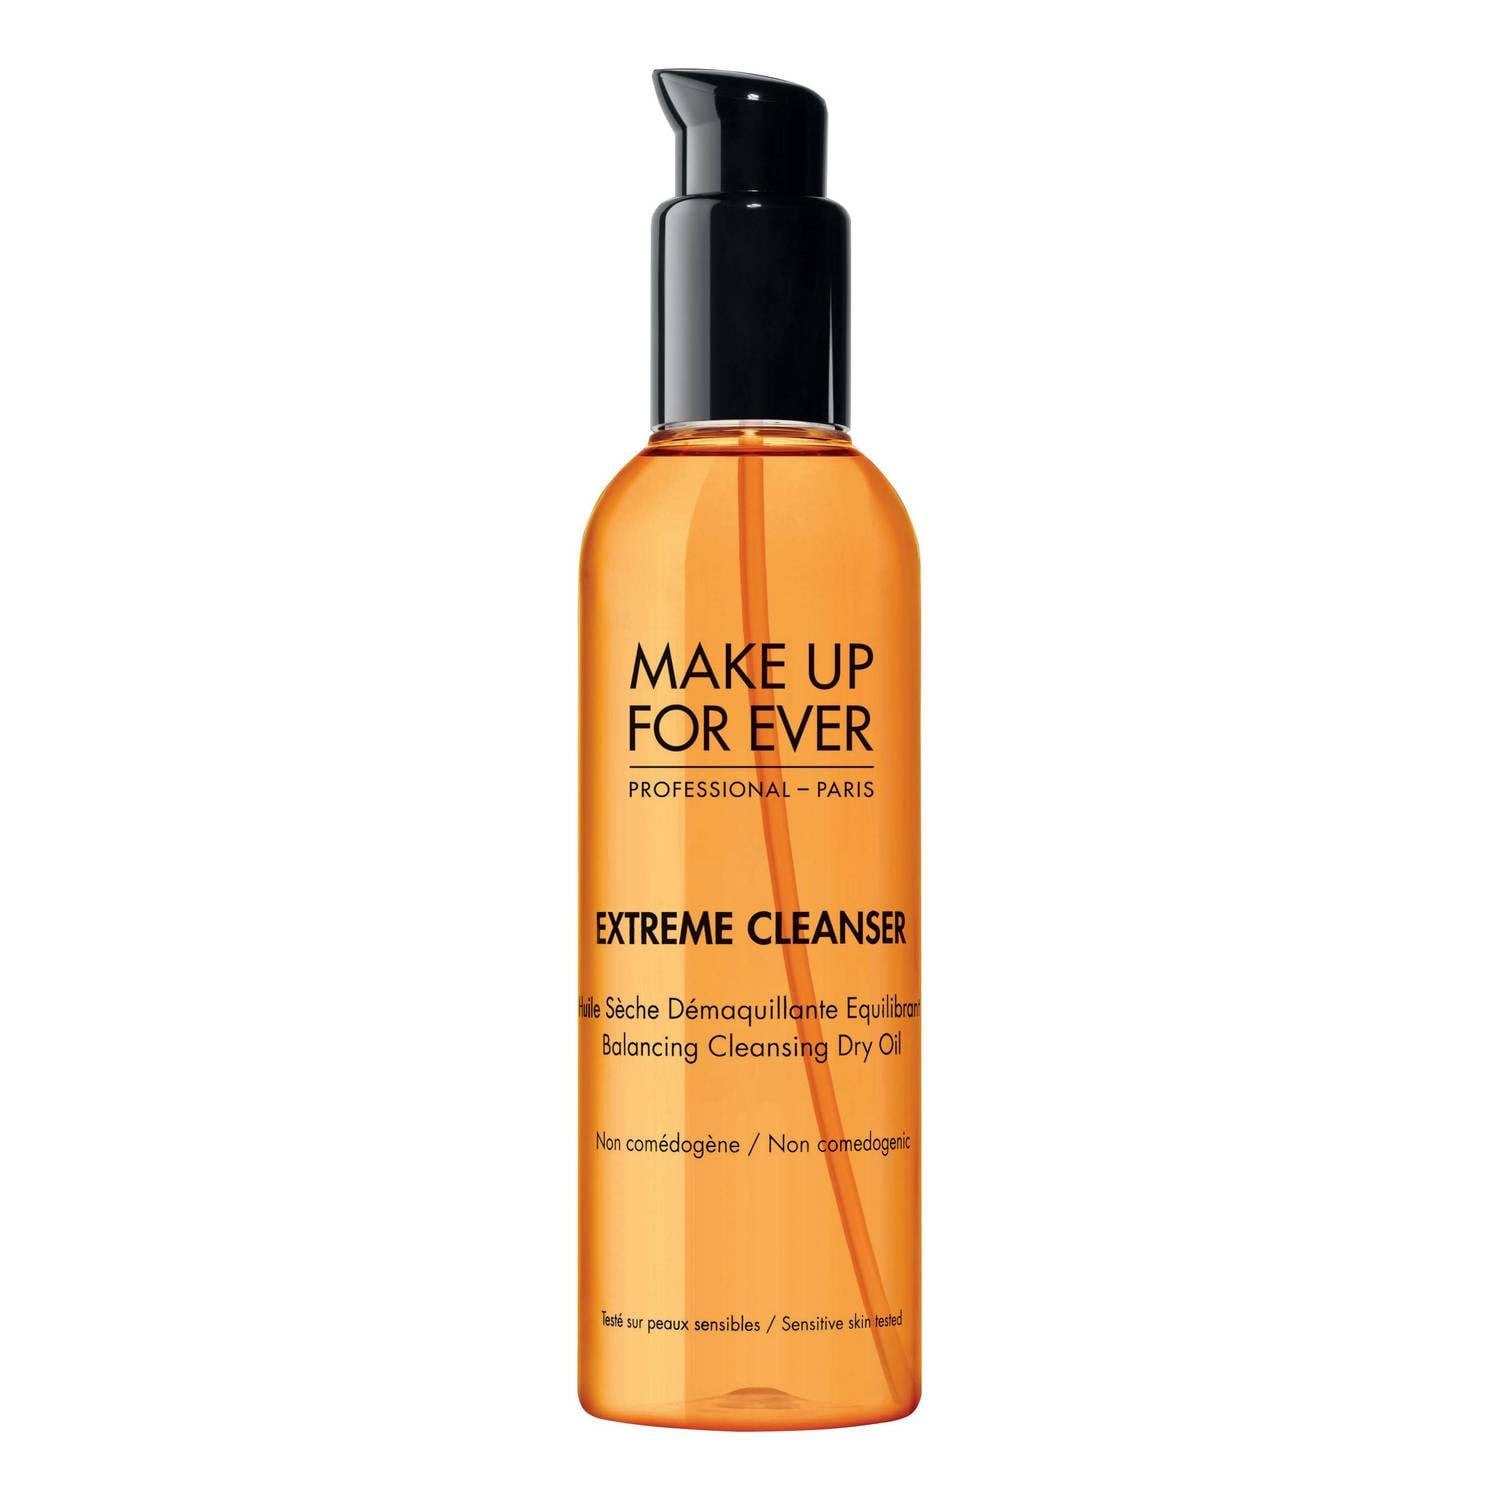 Extreme Cleanser - Huile Sèche Démaquillante Equilibrante, MAKE UP FOR EVER